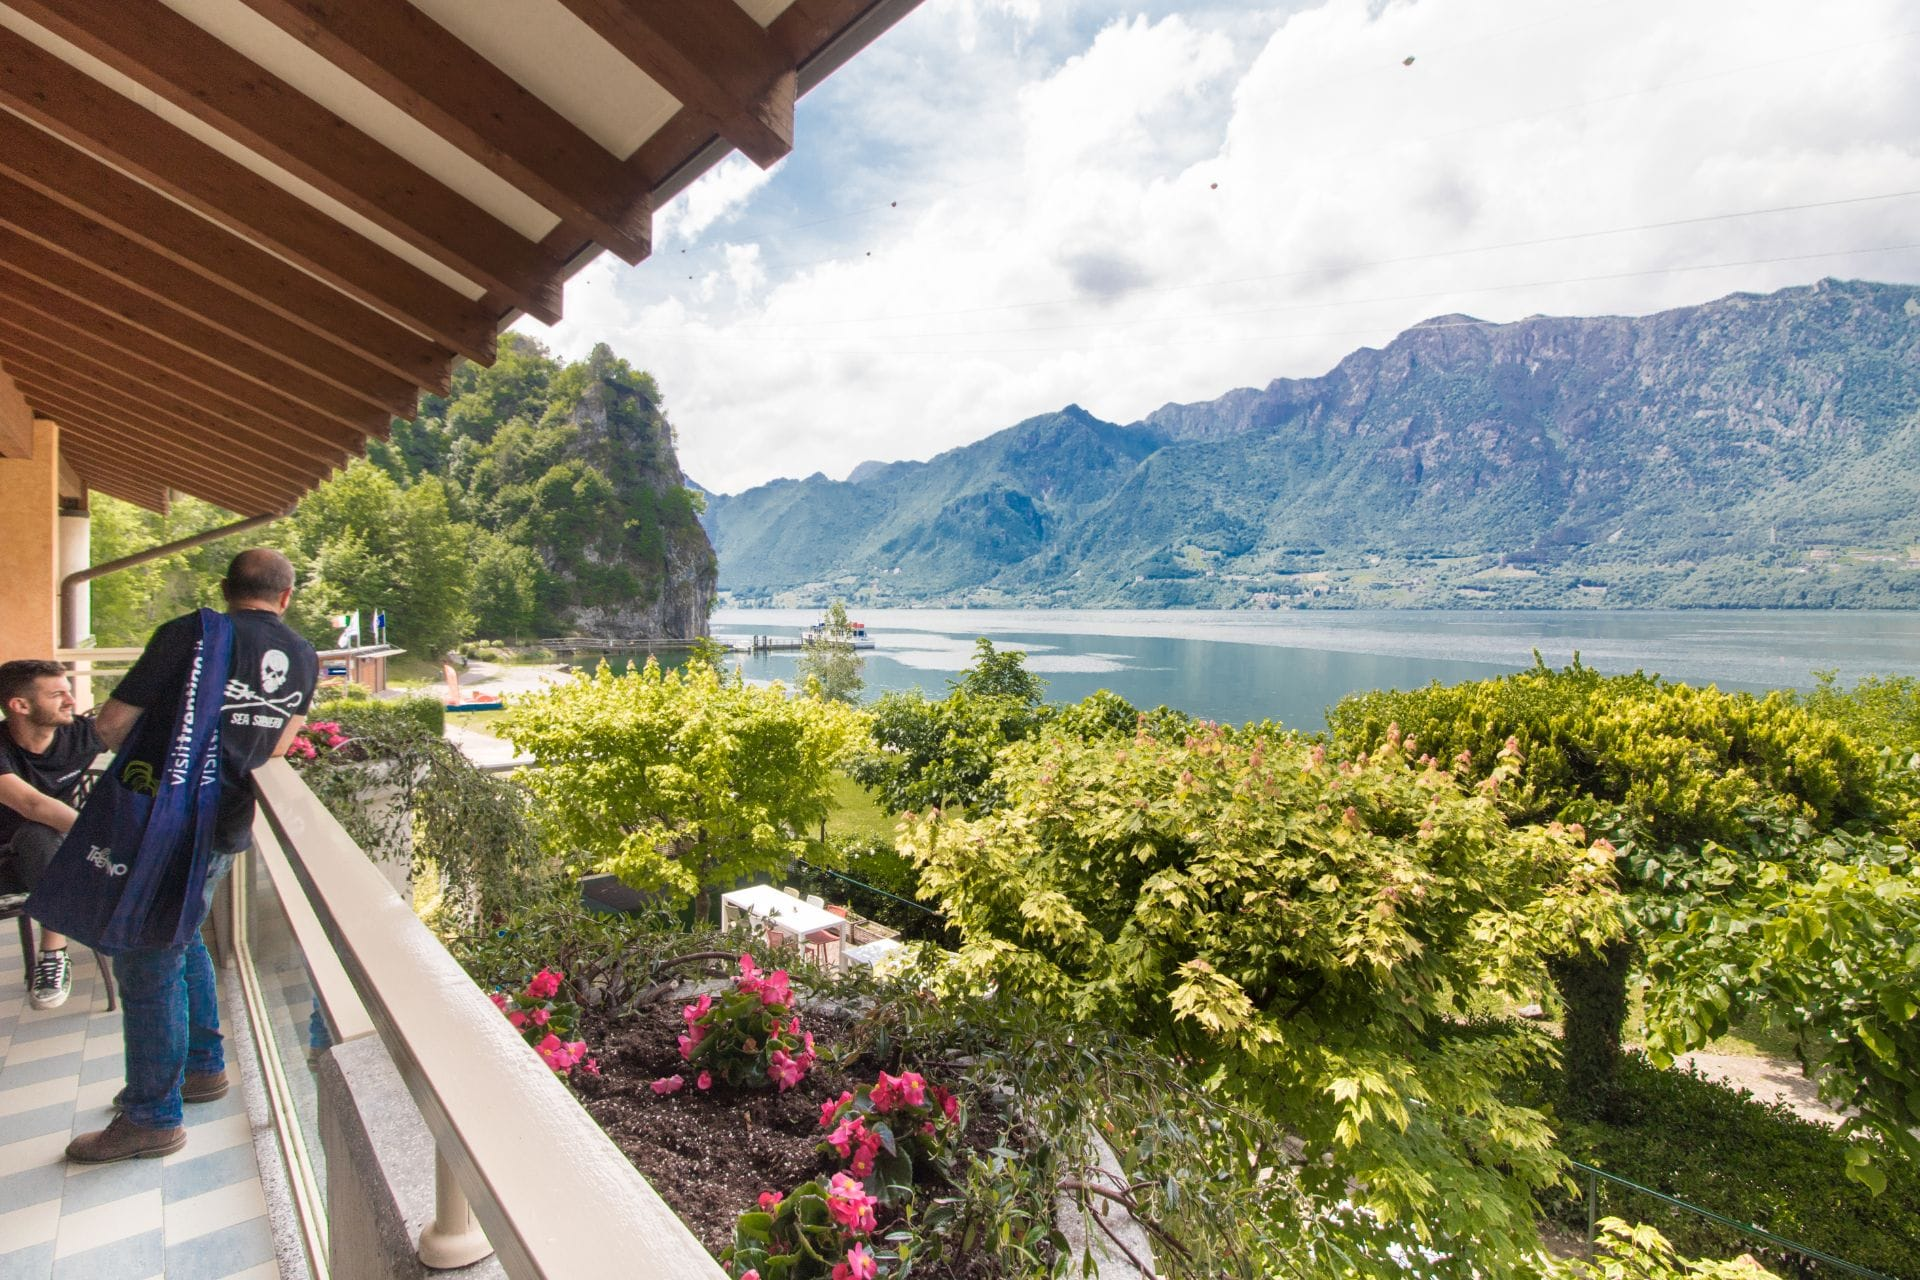 restaurant-bar-terrace-overlooking-trees-alake-and-mountains-lake-idro-valle-del-chiese-trentino-italy